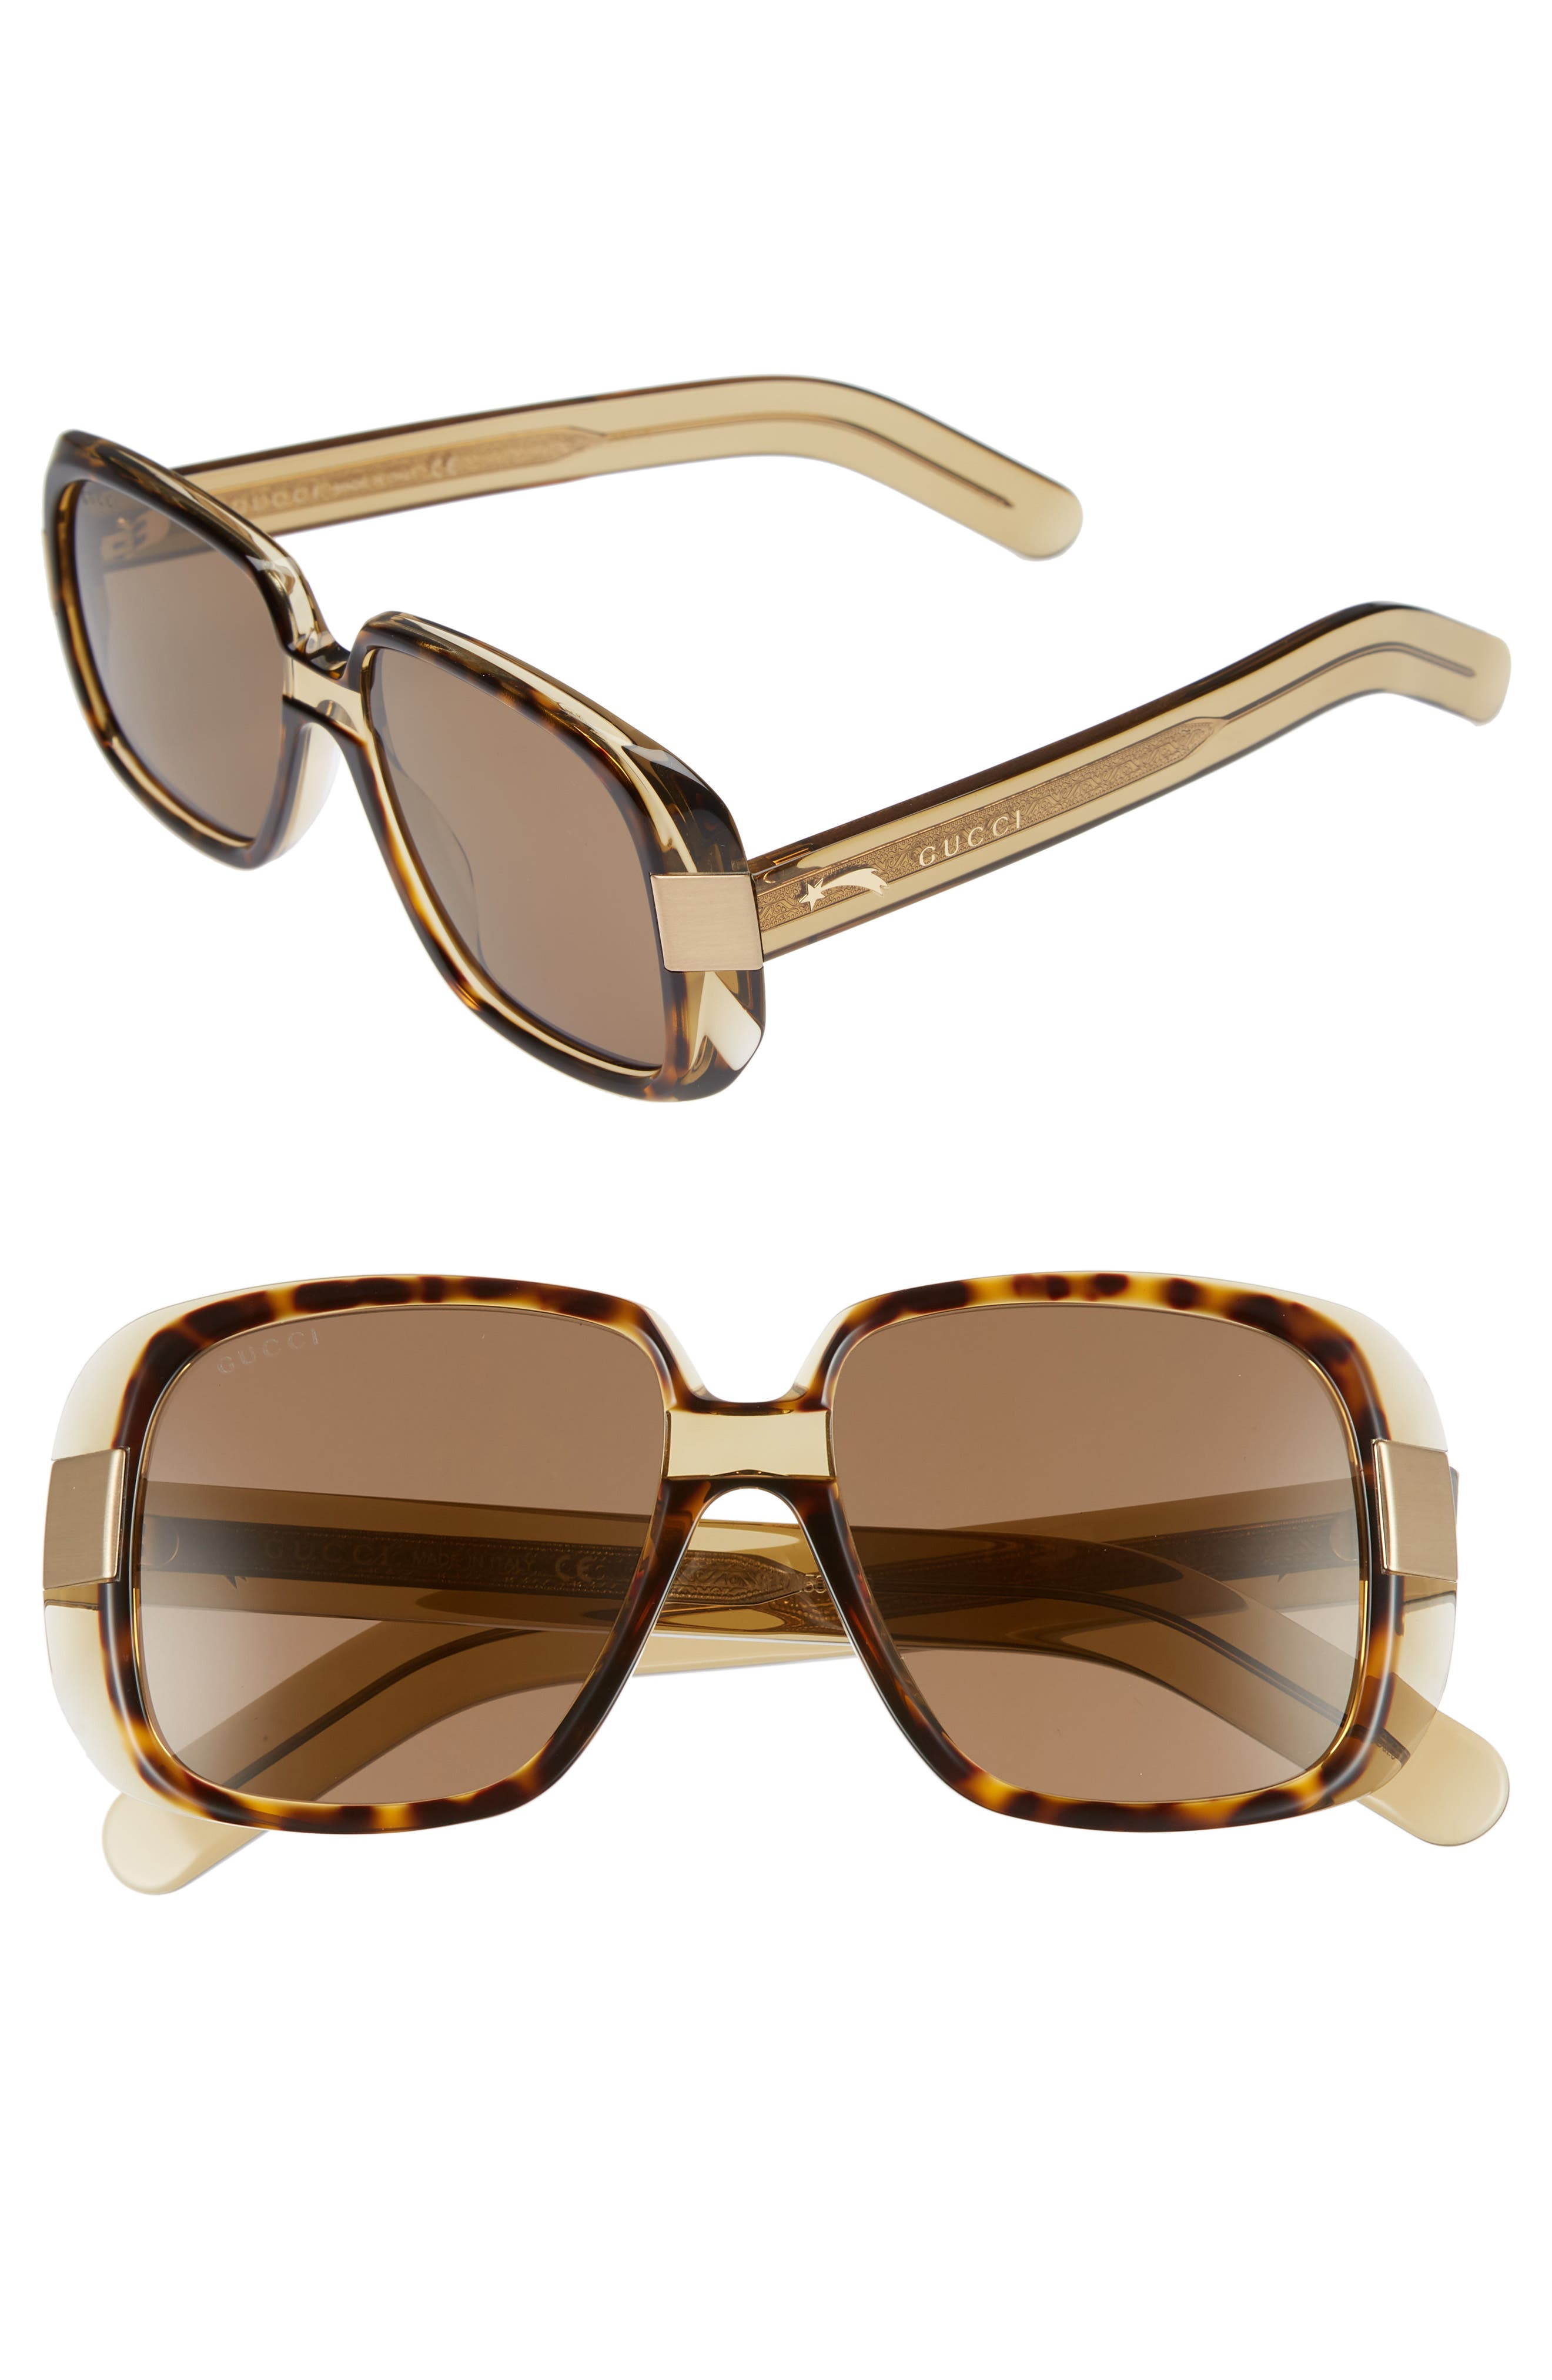 Alternate Image 1 Selected - Gucci Cruise 51mm Square Sunglasses